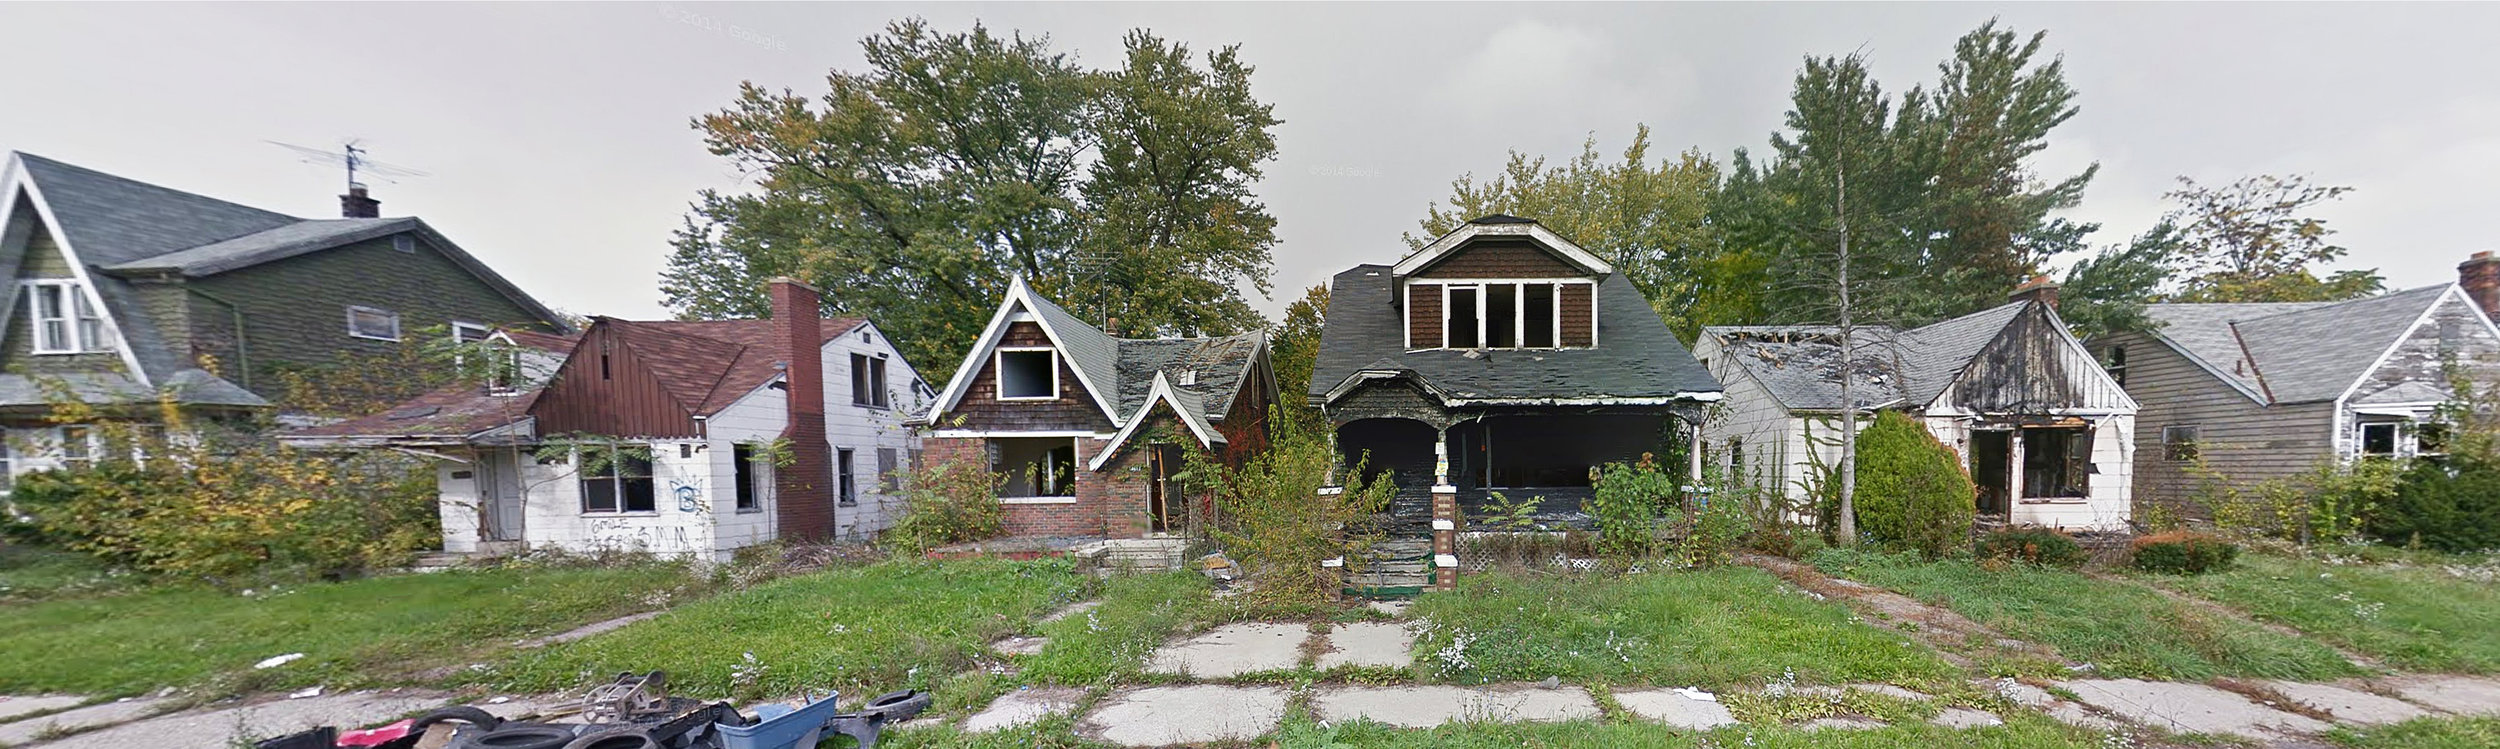 A Hurricane Without Water - Google Street View Images of Detroit, 2008 to 2015 by Alex Alsup